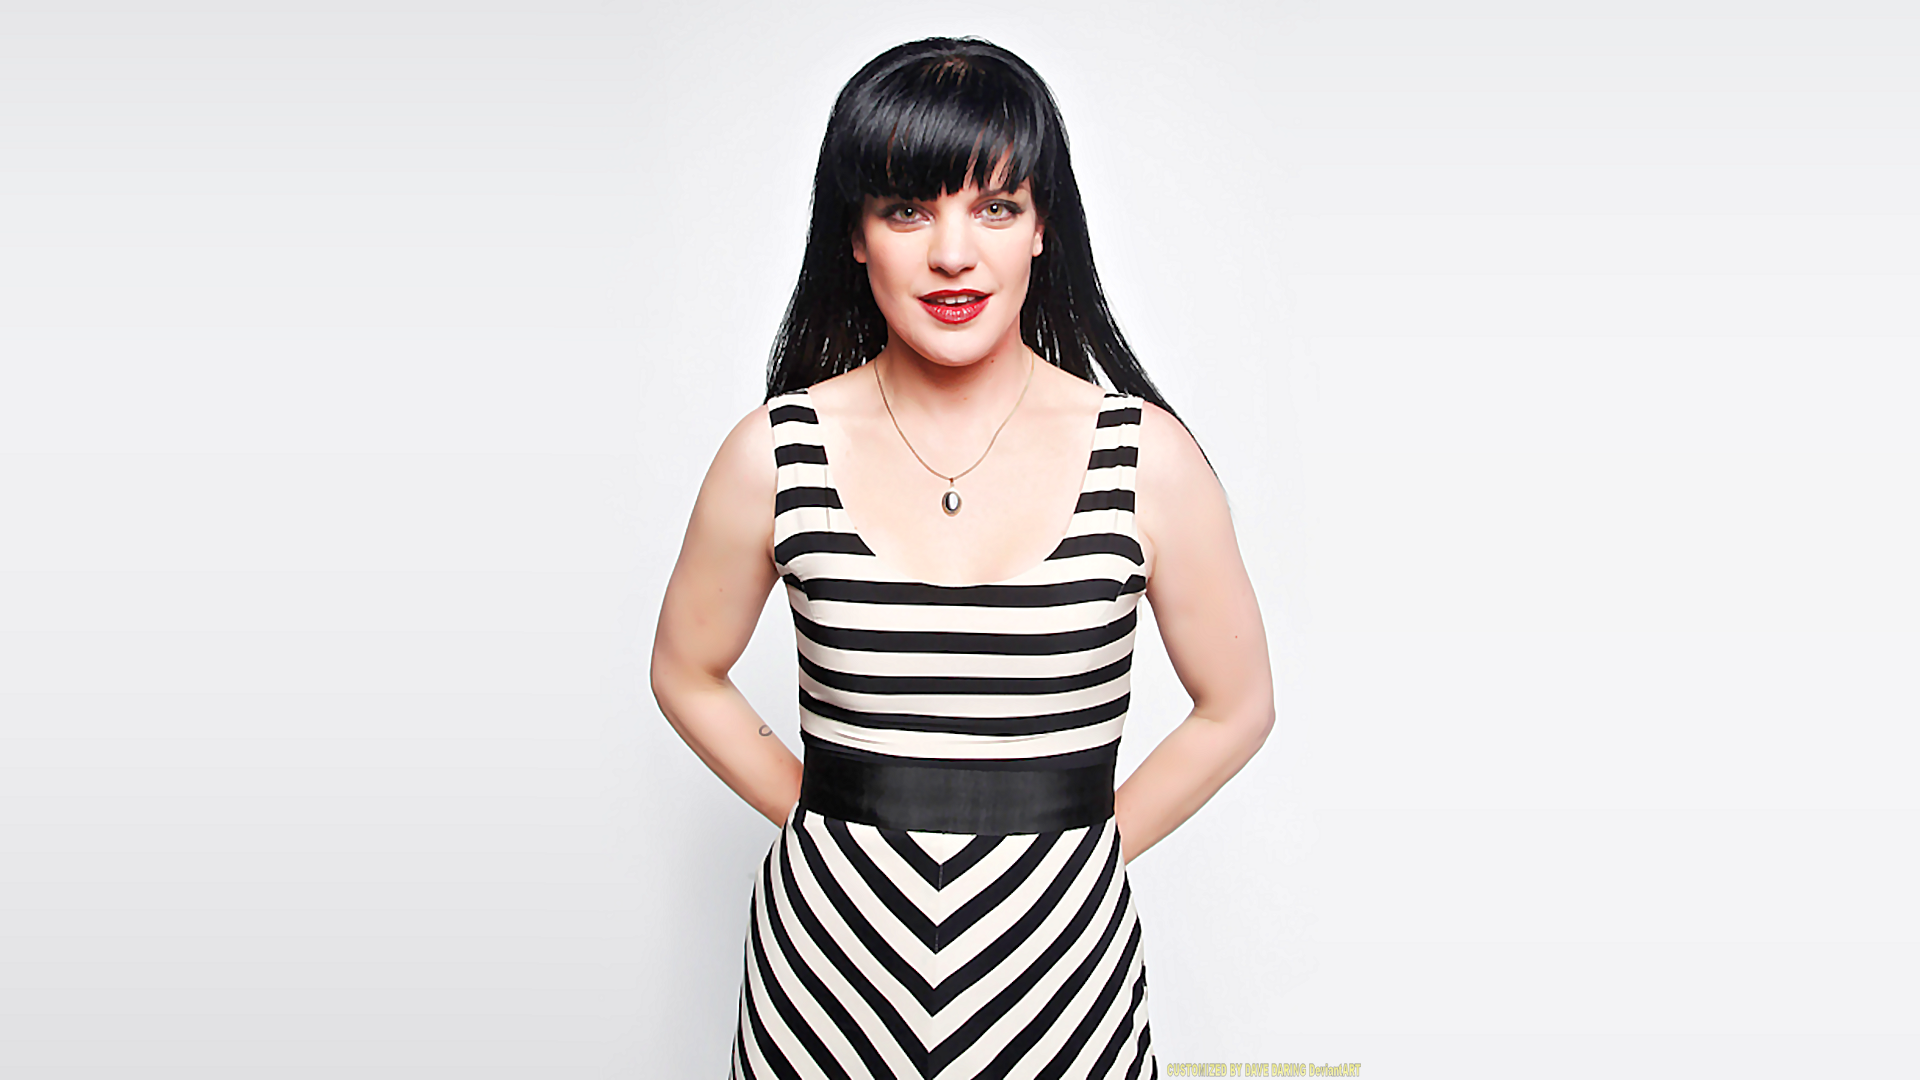 Actress pauley perrette photos